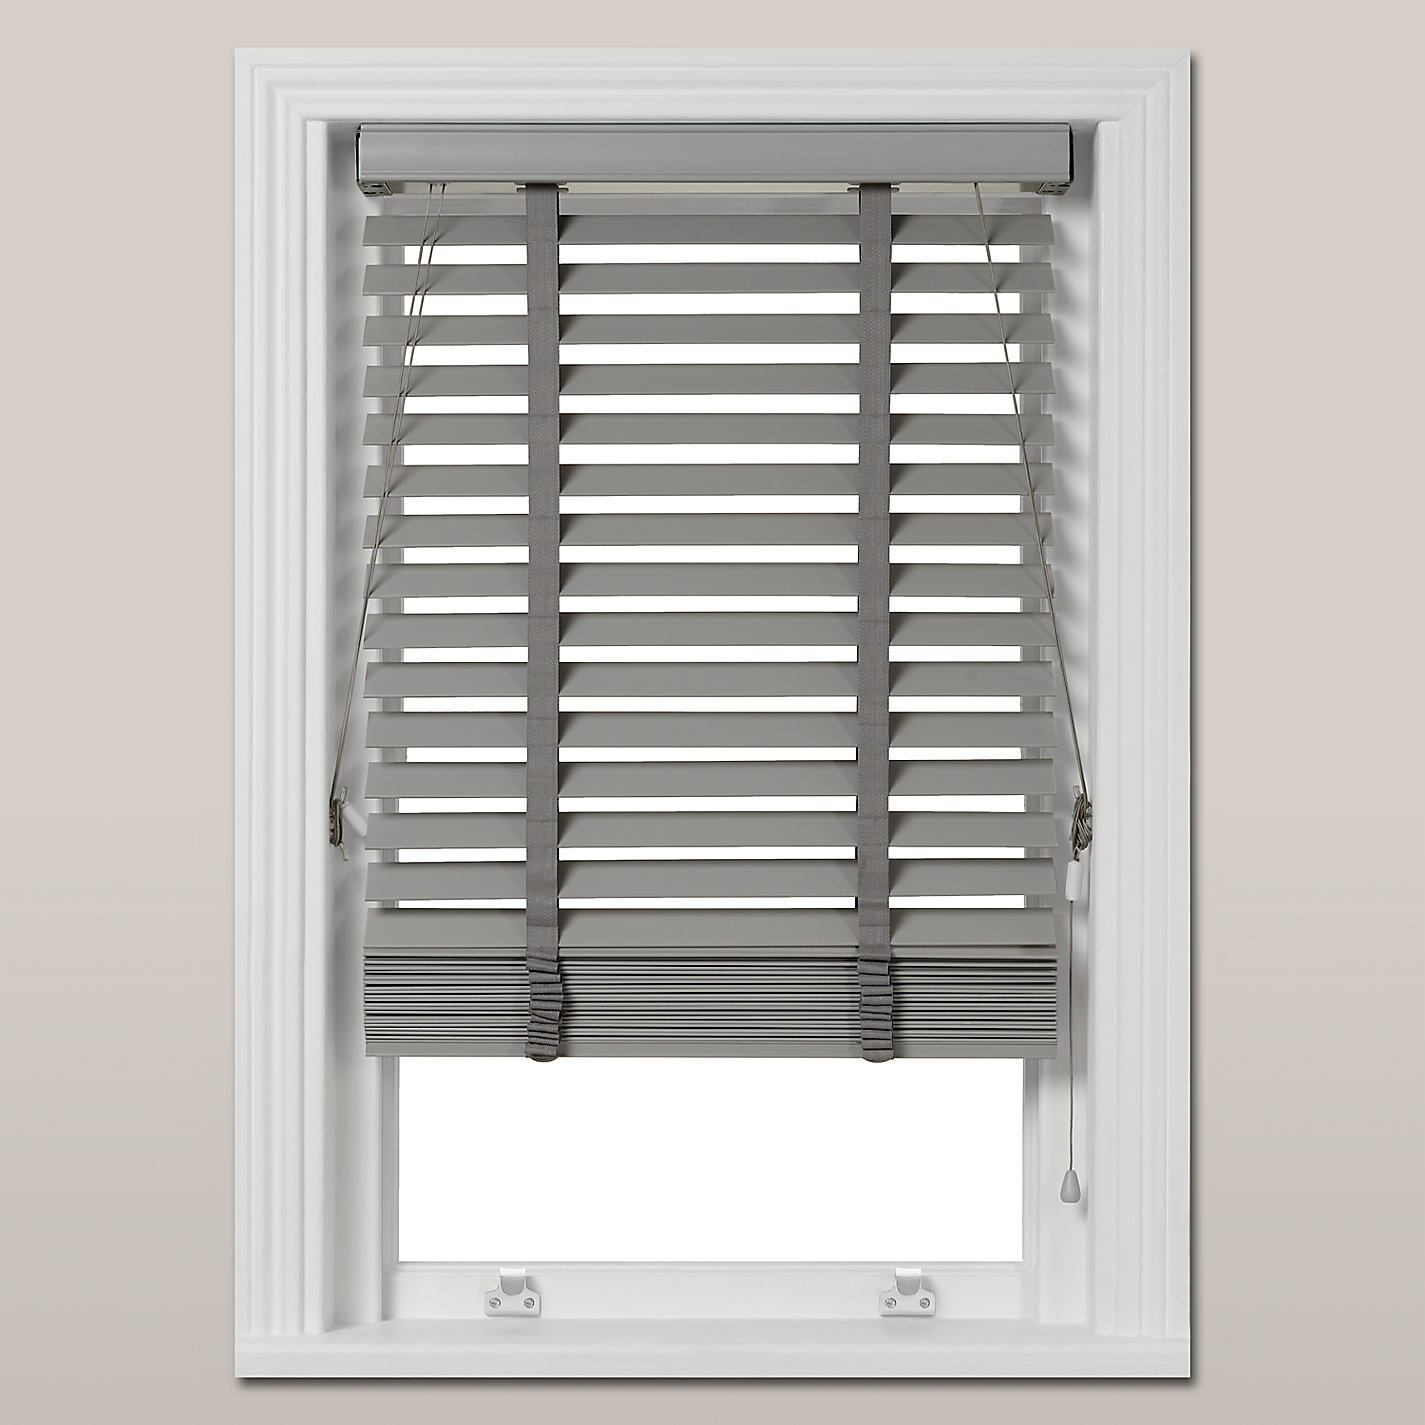 Cheap roman shades clearance - Buy John Lewis Croft Collection Wood Venetian Blind Fsc Certified 50mm